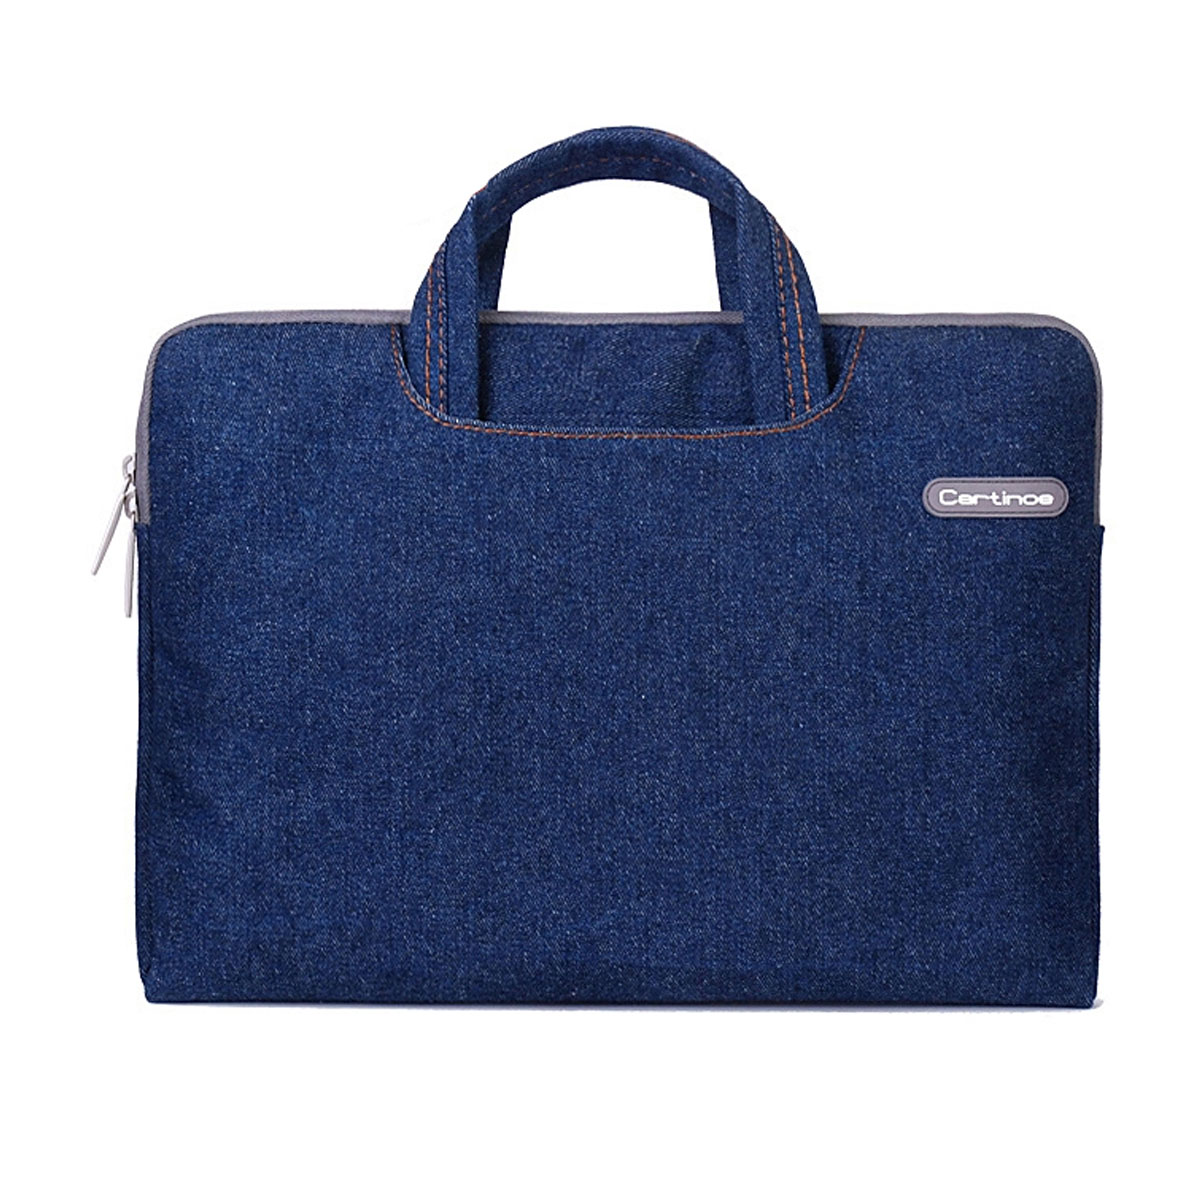 "Cartinoe Classic Jeans Laptop Inner Sleeve Bag for MacBook 12"" - Blue"